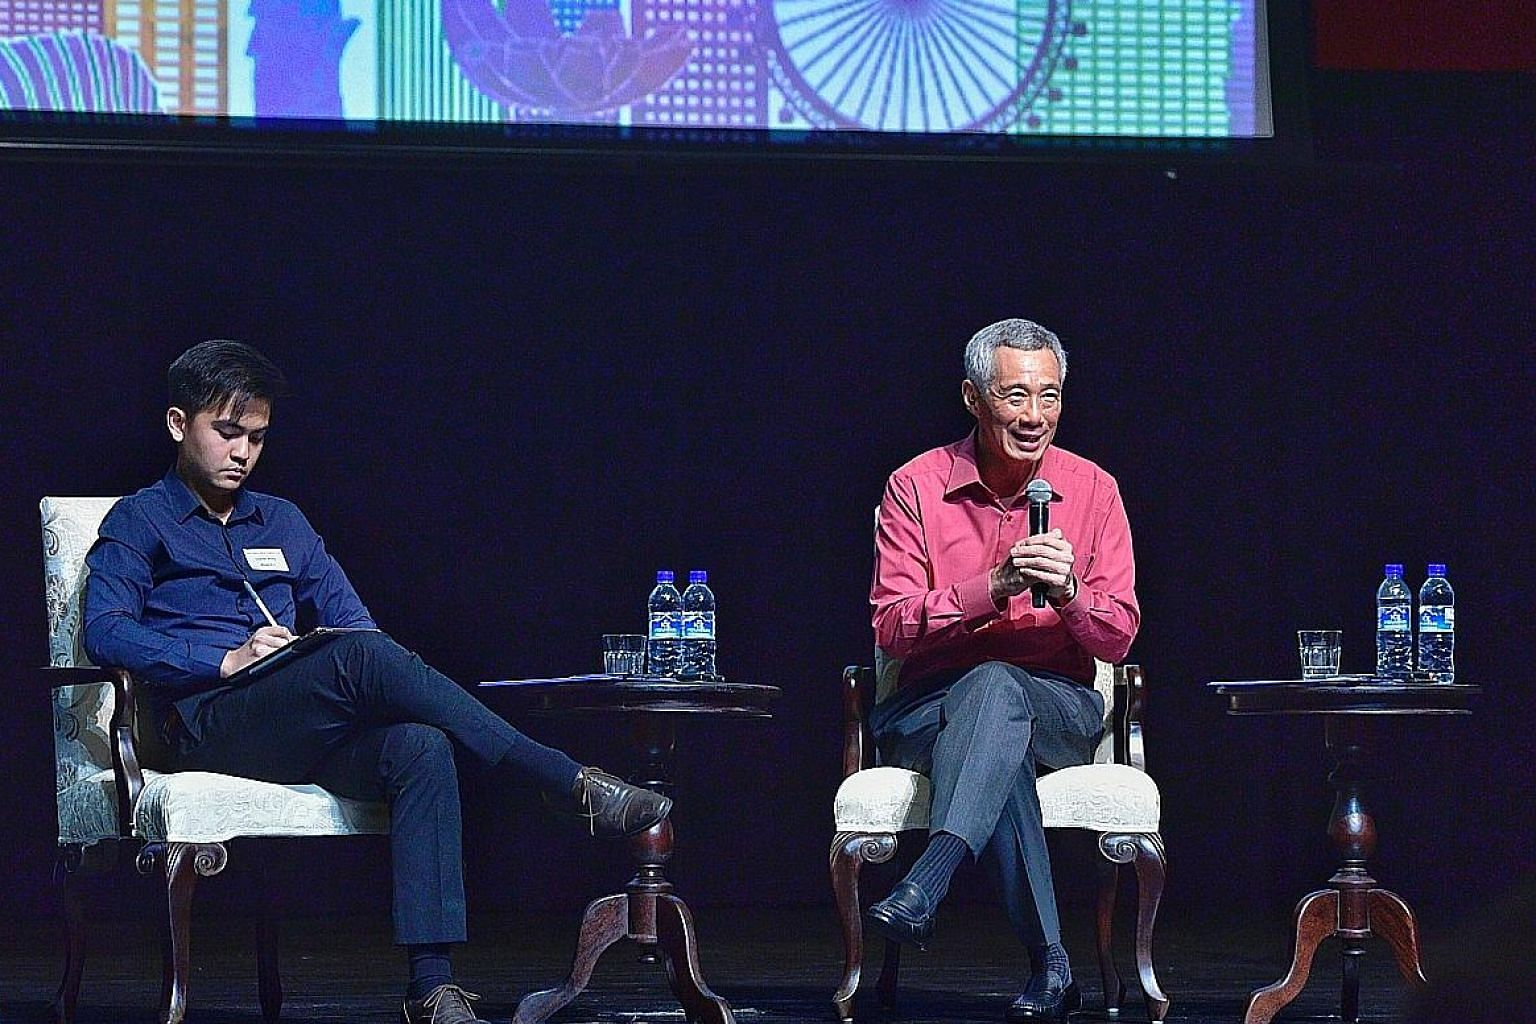 "Singapore can become a multi-layered city like the great cities of the world - ""always changing, always fresh"", said Prime Minister Lee Hsien Loong, seen here with moderator Charles Wong at the inaugural Ministerial Forum of the Singapore University"